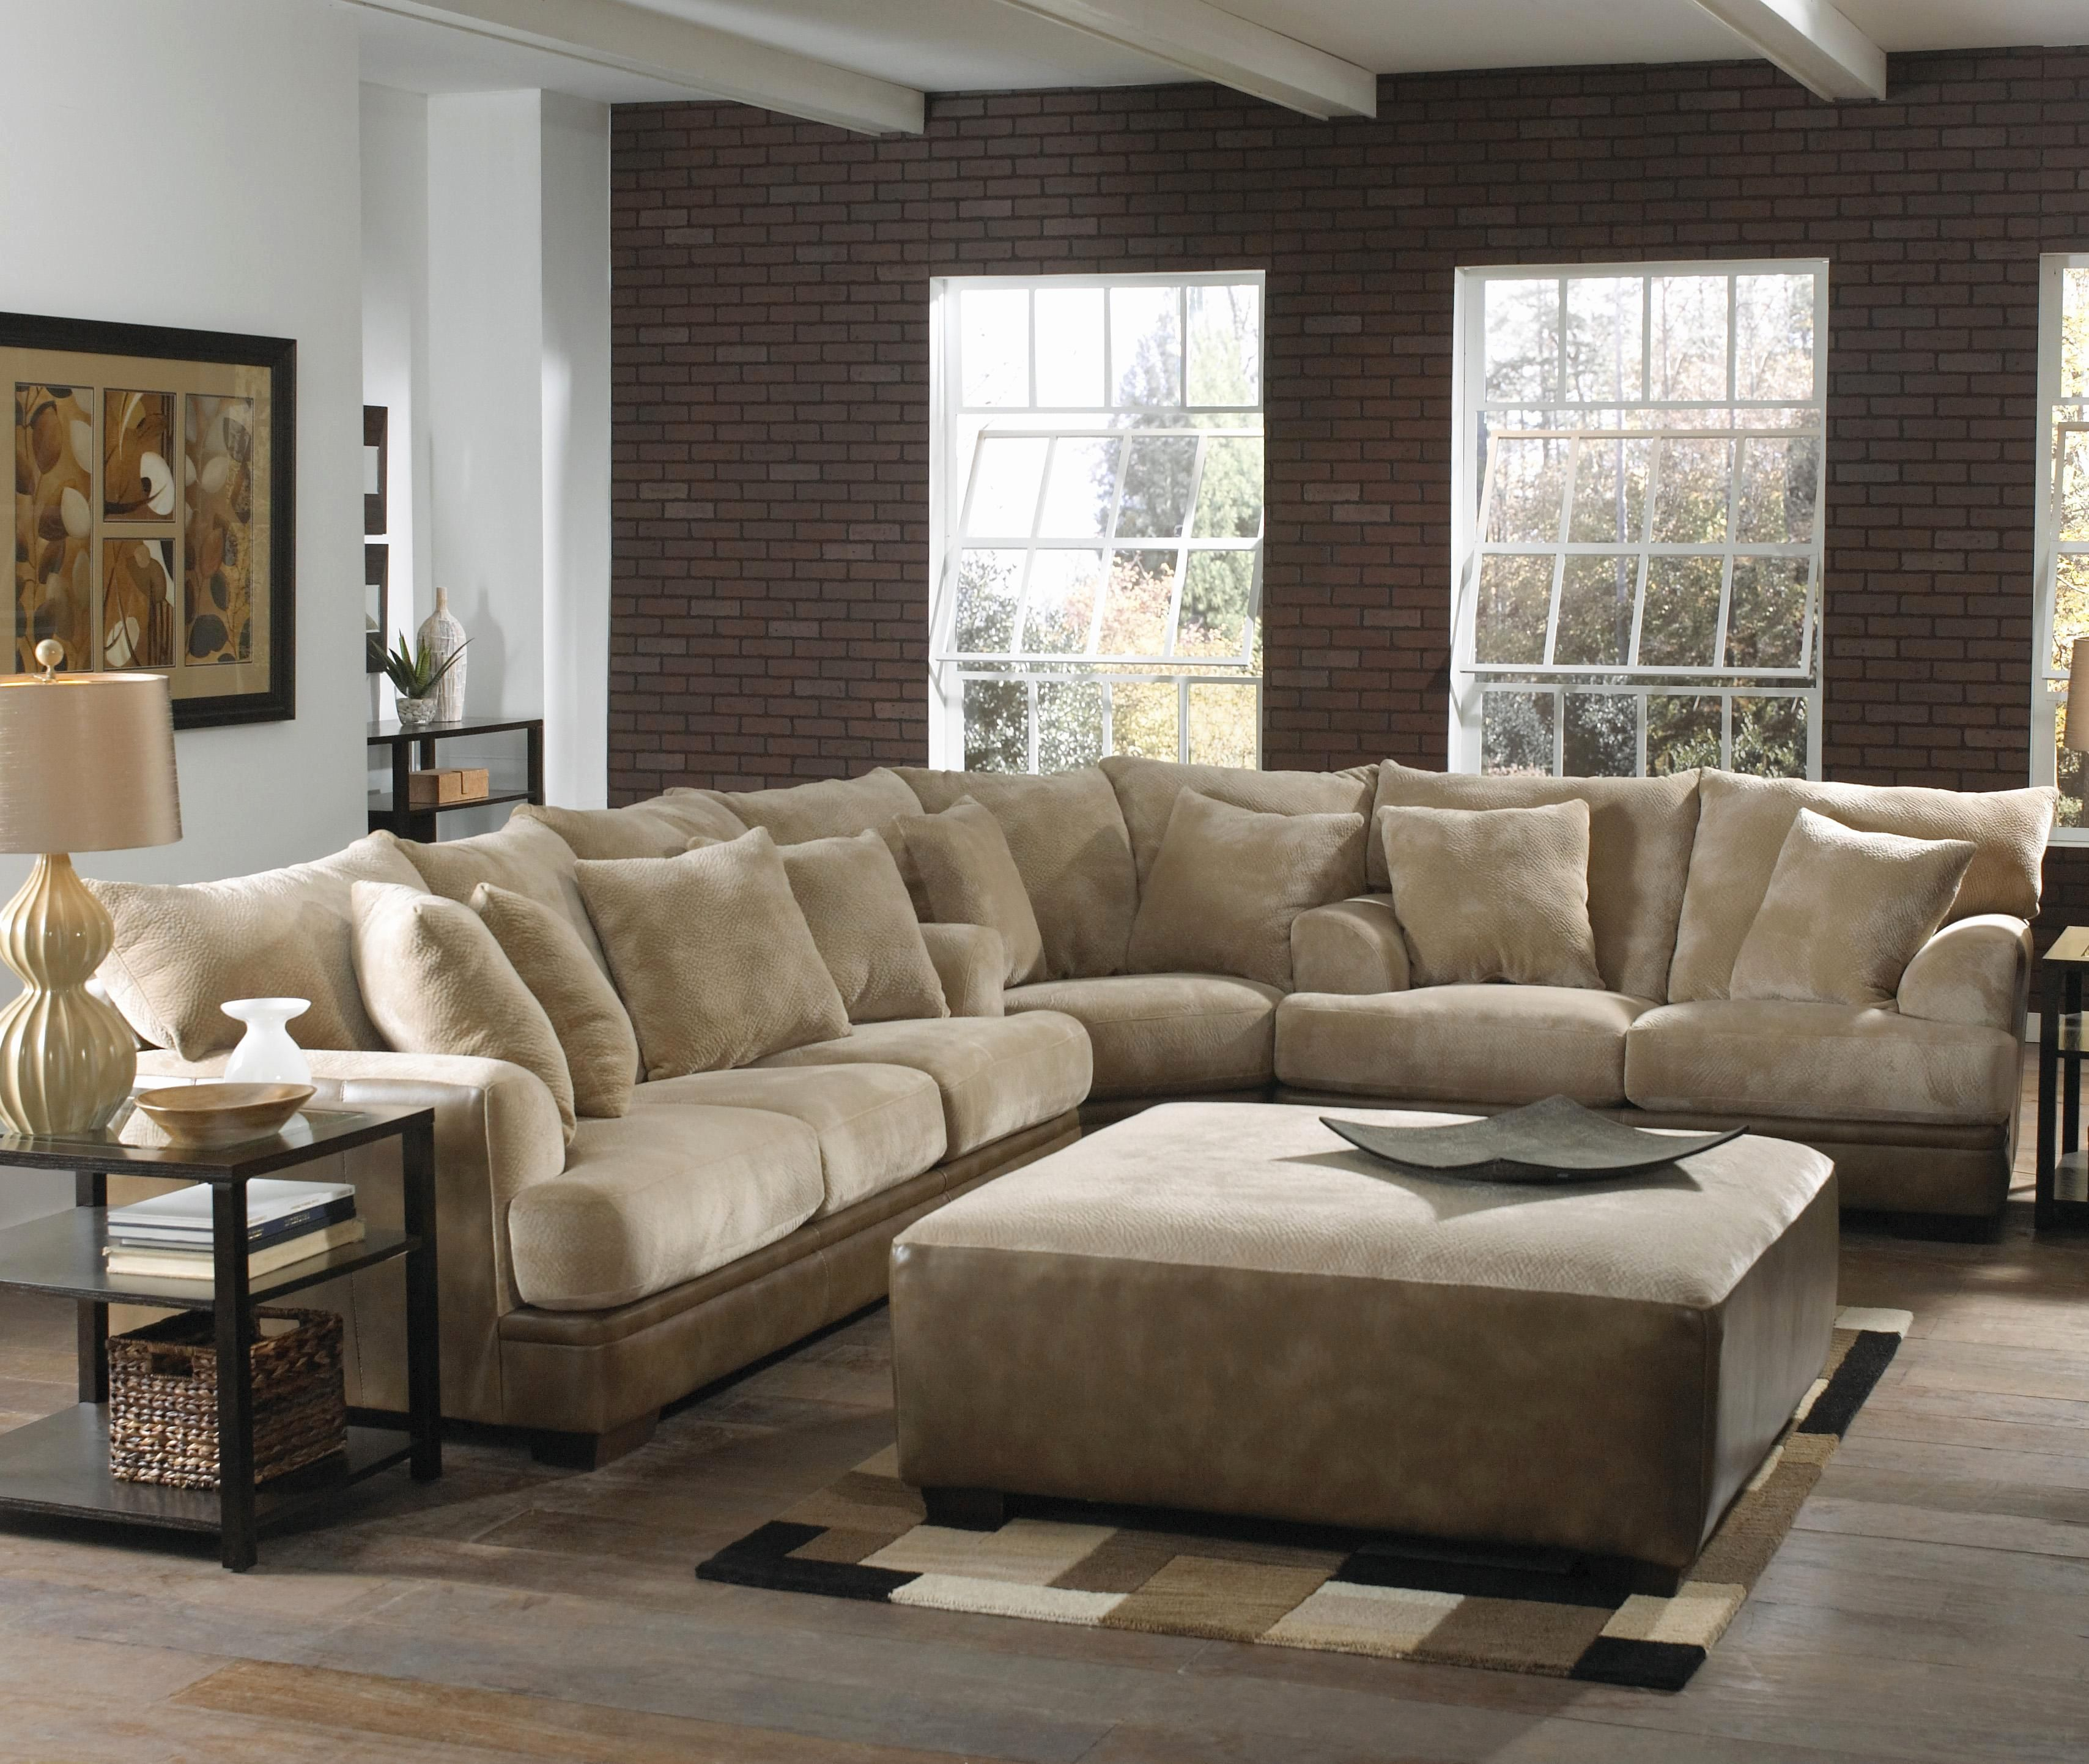 Unique Room And Board Sectional Sofa Pictures Room And Board Sectional Sofa Elegant Barkley Large L Living Room Sofa Living Room Sets Living Room Decor Modern